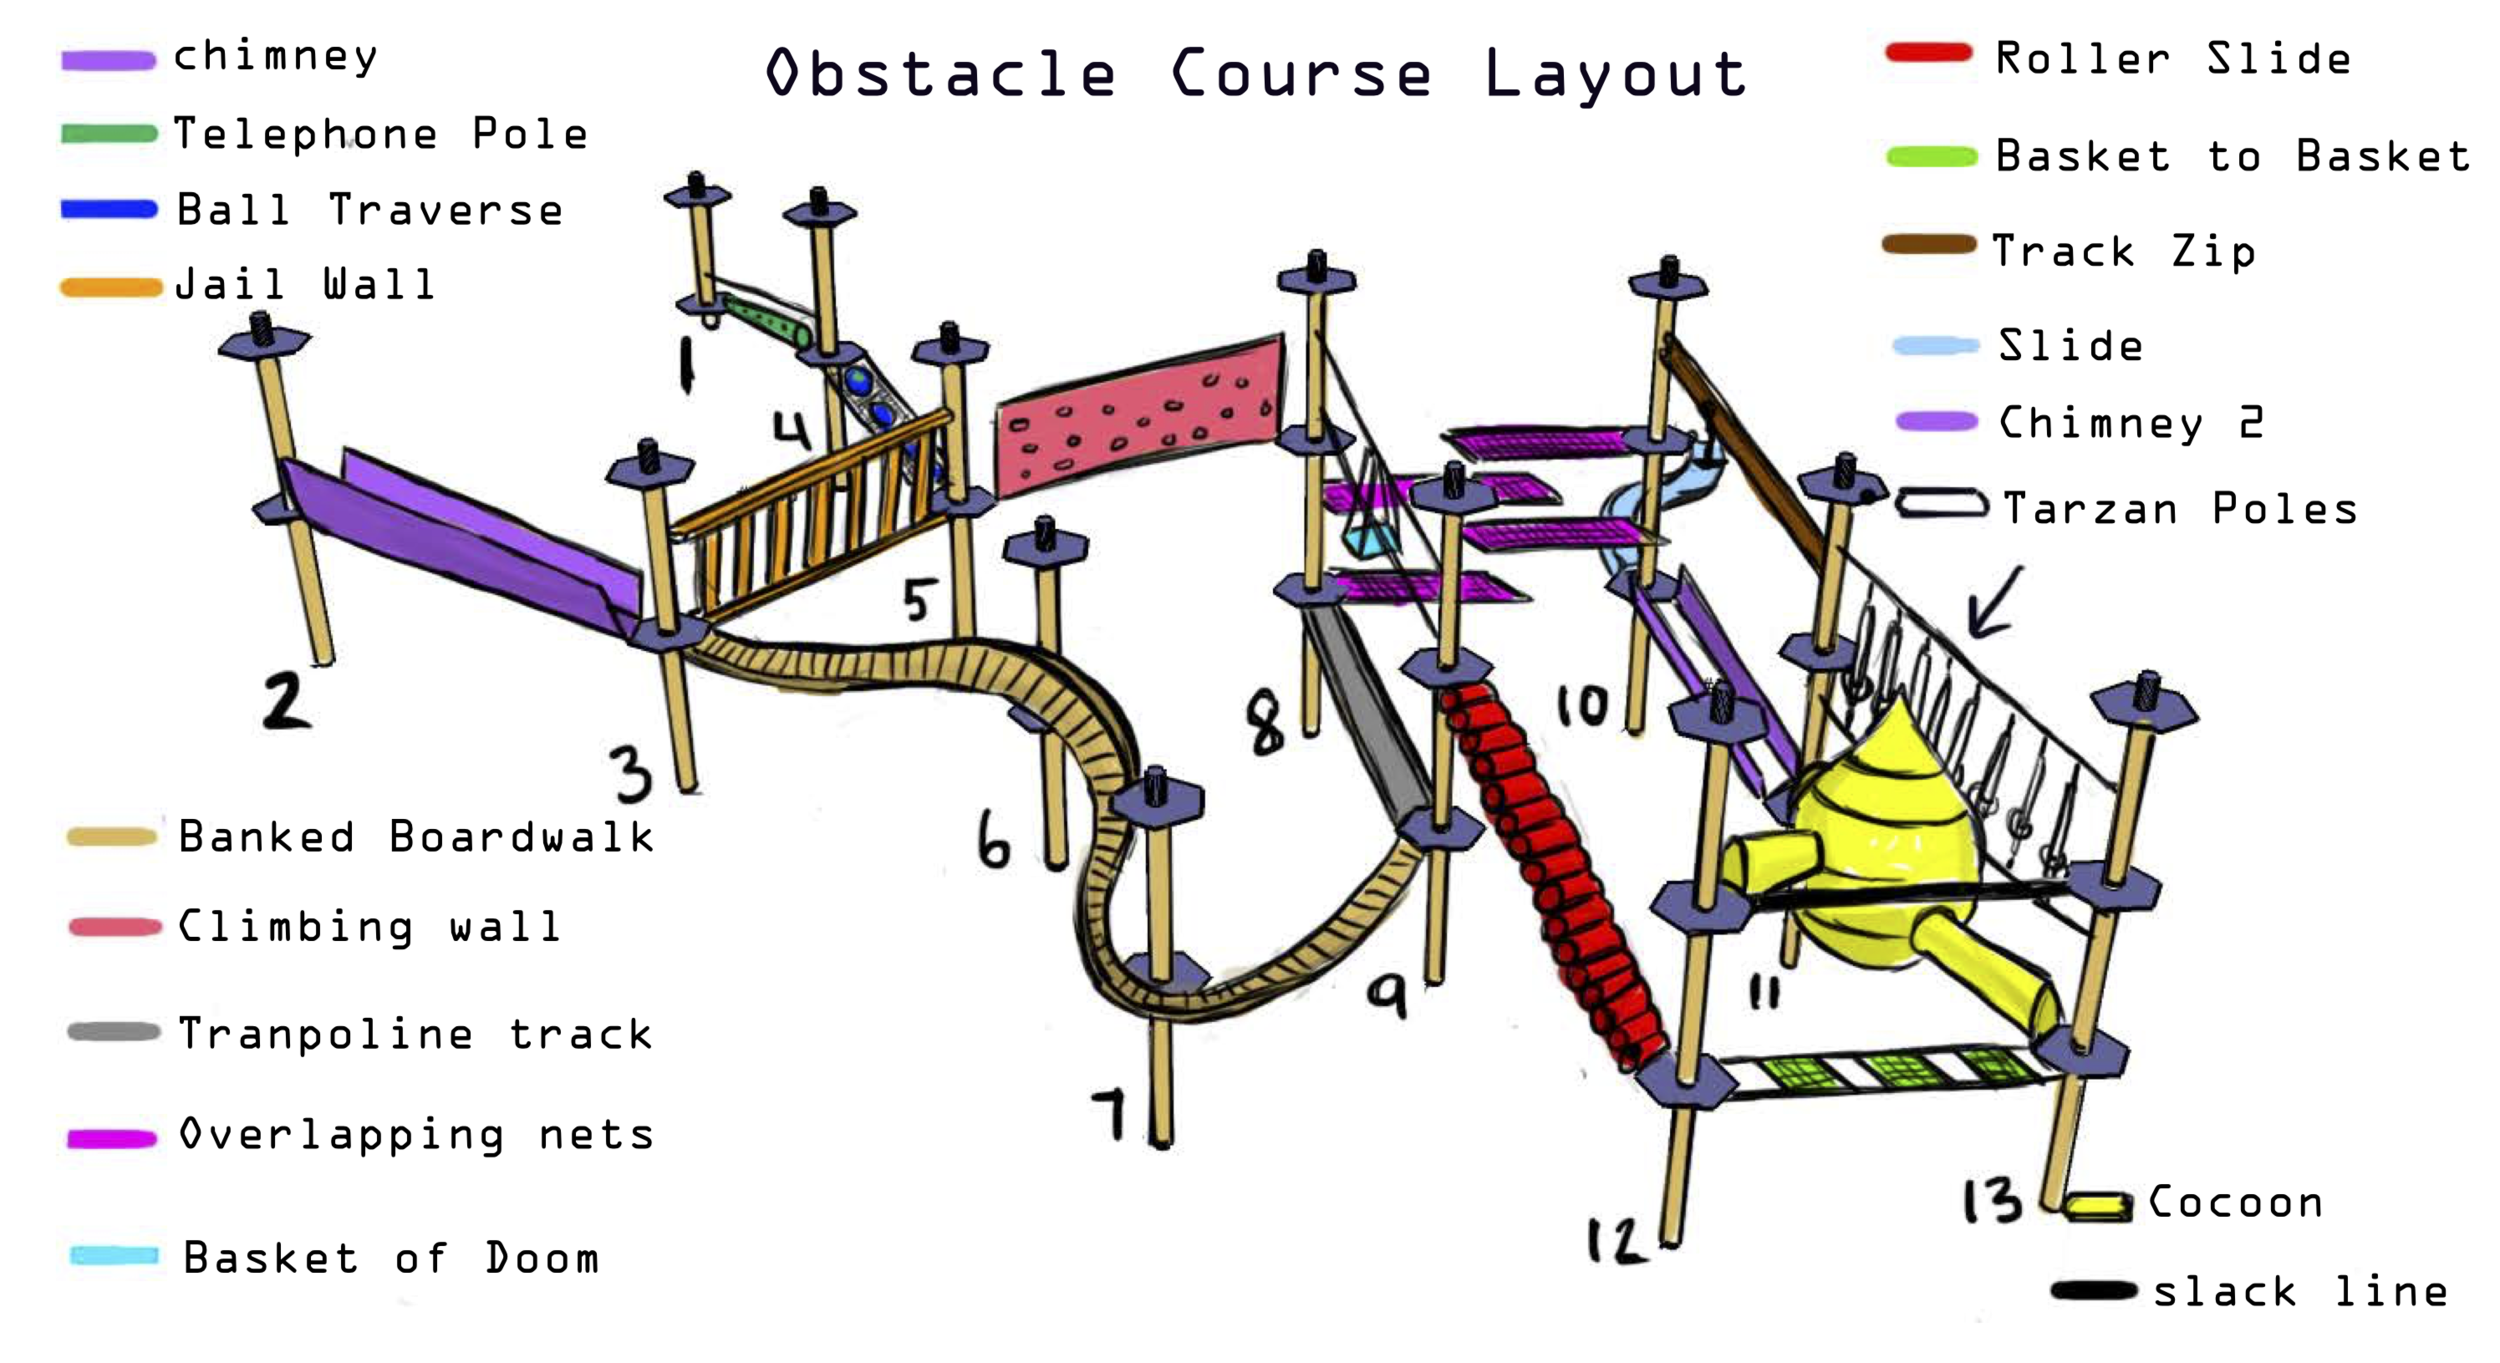 Obstacle course layout.png